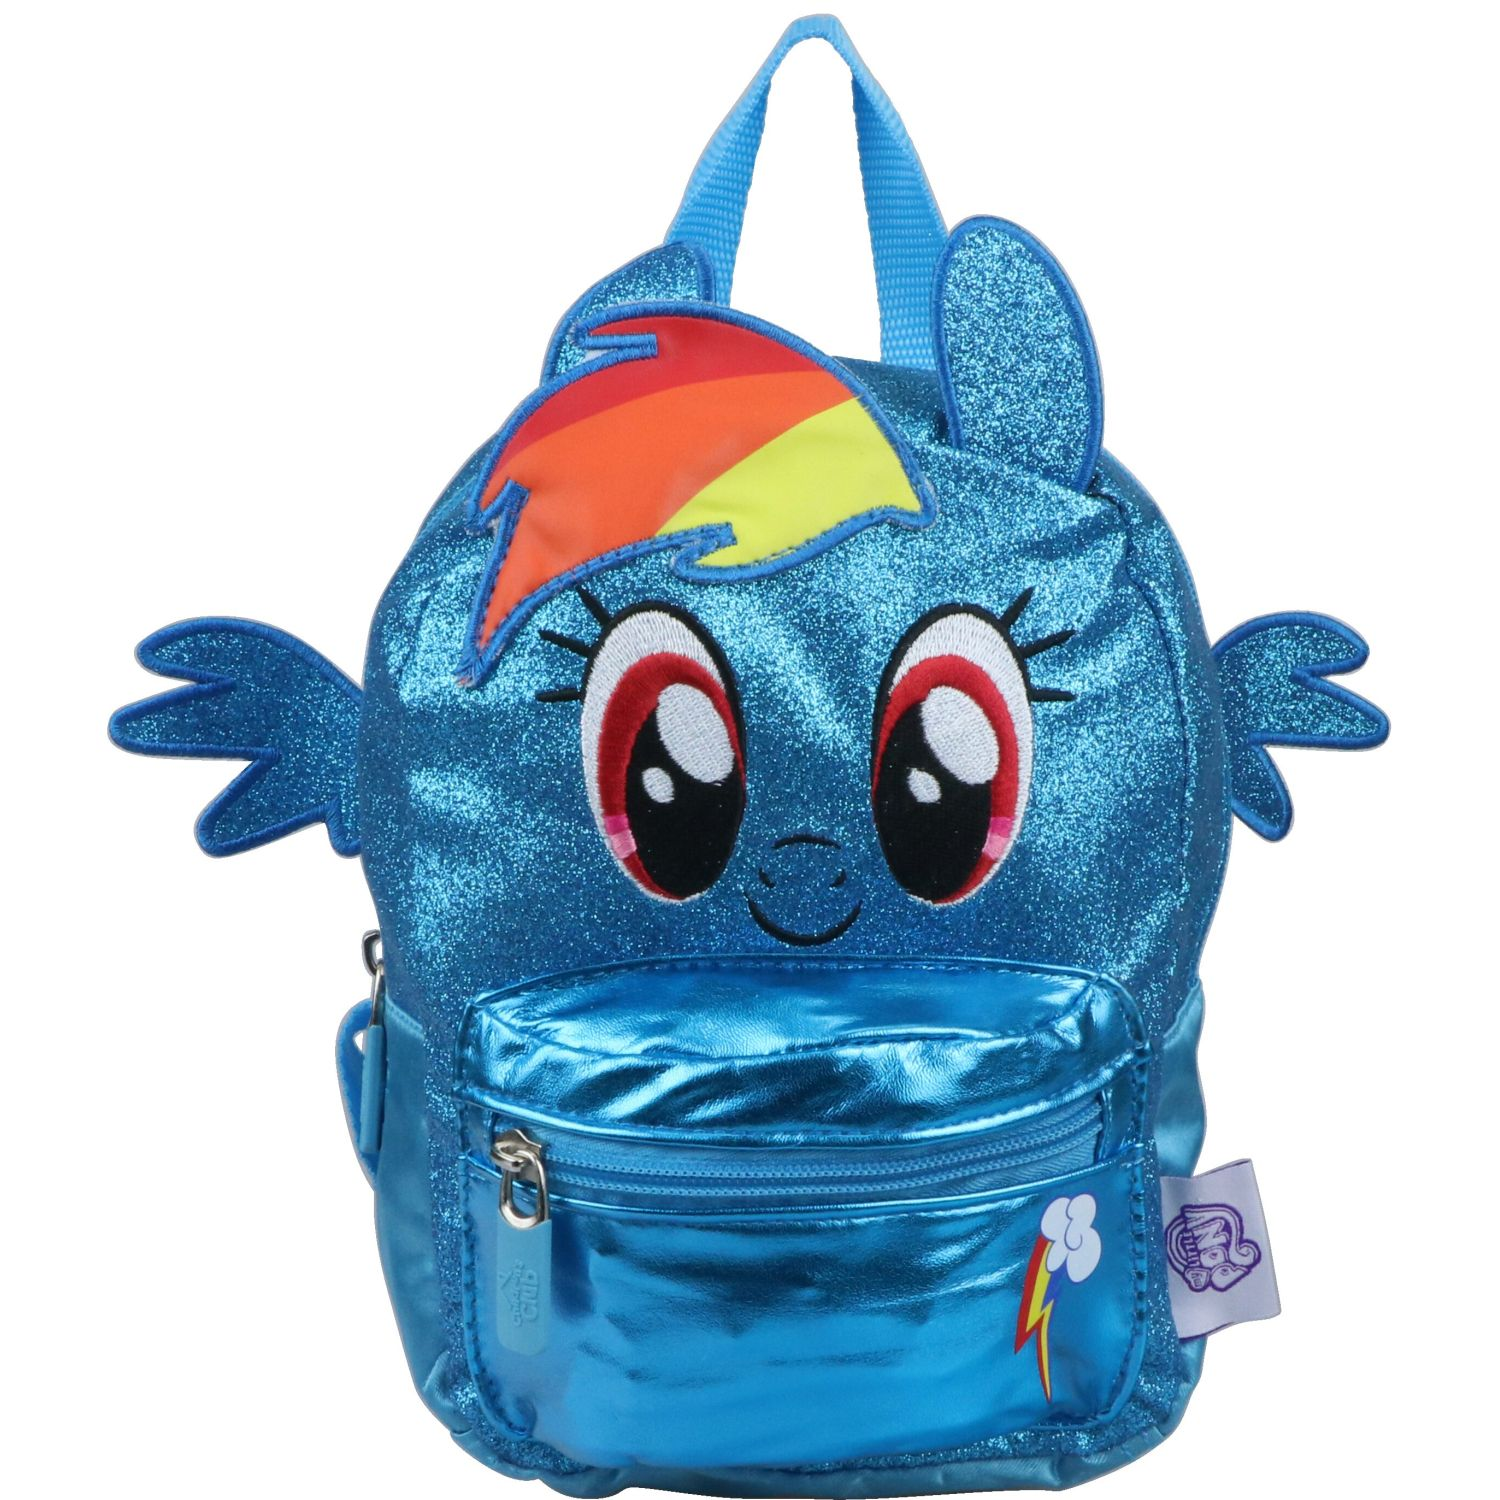 My Little Pony mochila niÑa my little pony Celeste mochilas